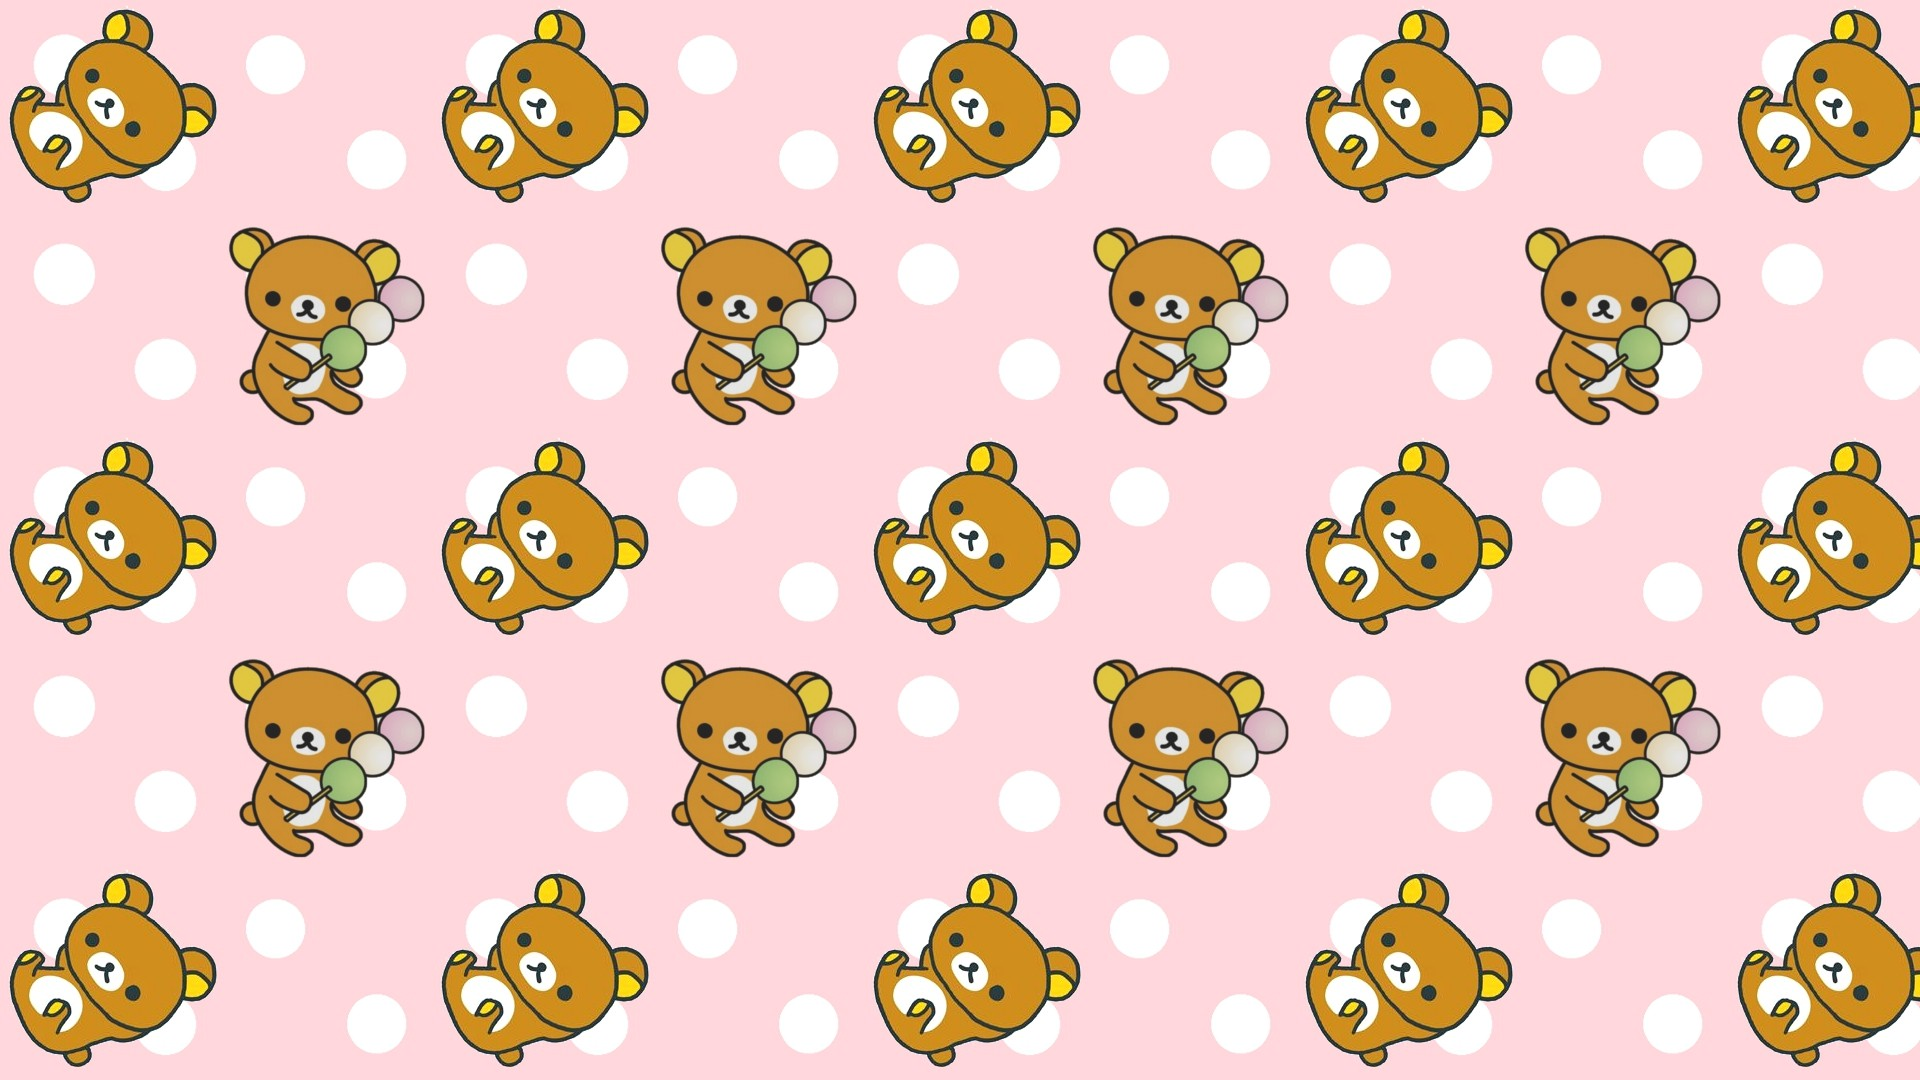 Rilakkuma Wallpaper 1 Download Free Awesome HD Backgrounds For